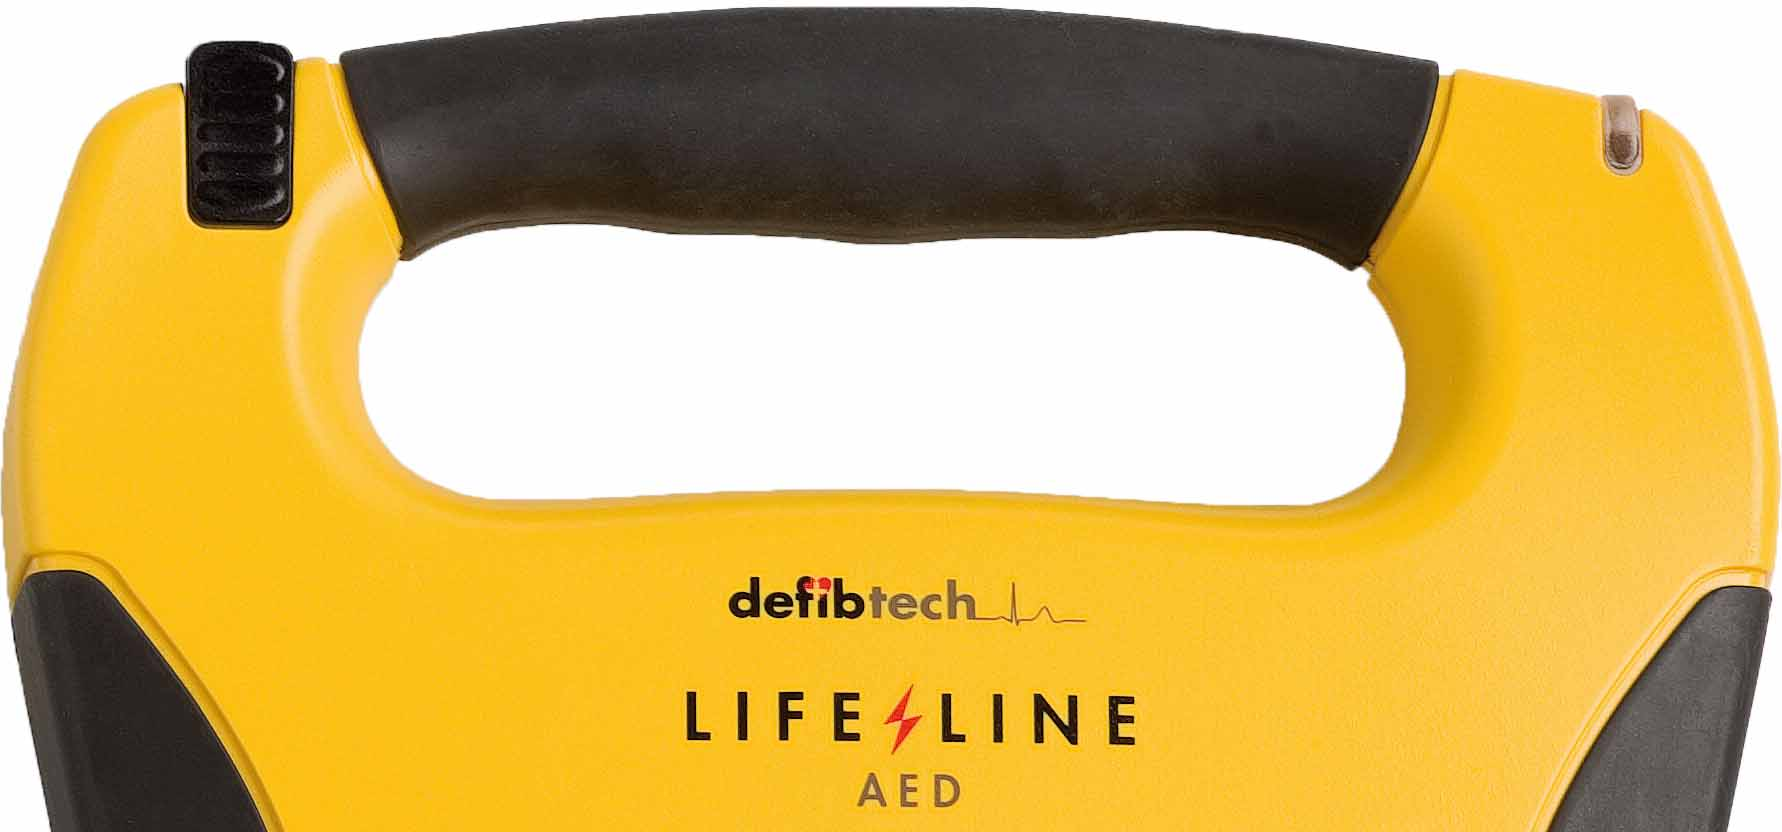 Defibtech Lifeline antislip-greep